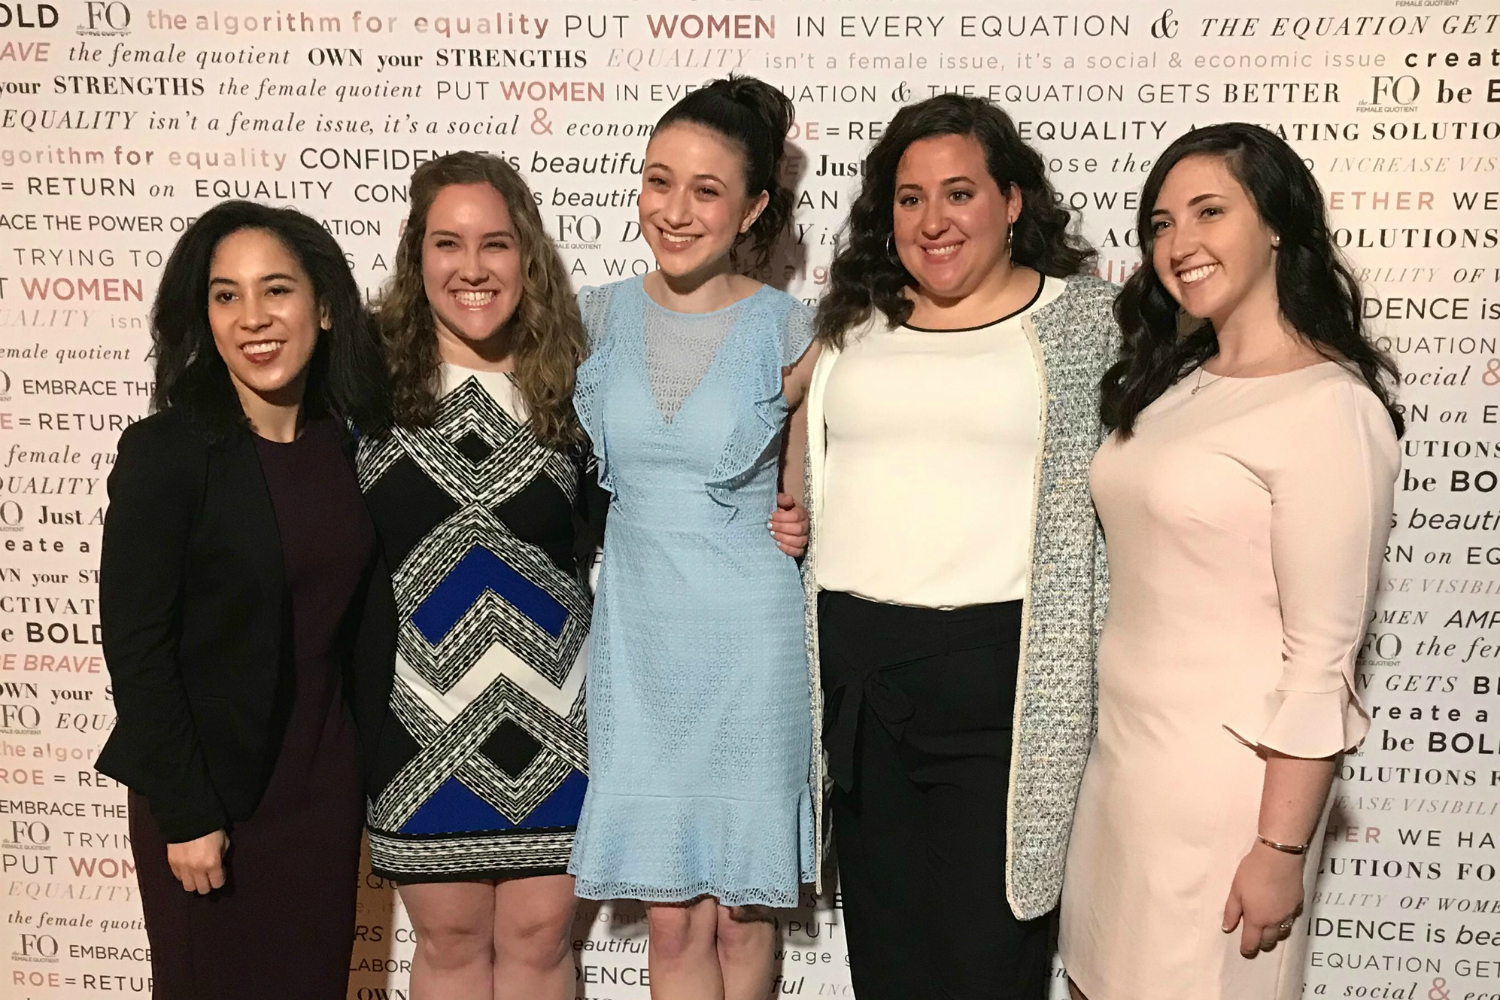 NYWICI scholarship recipients pose arm in arm